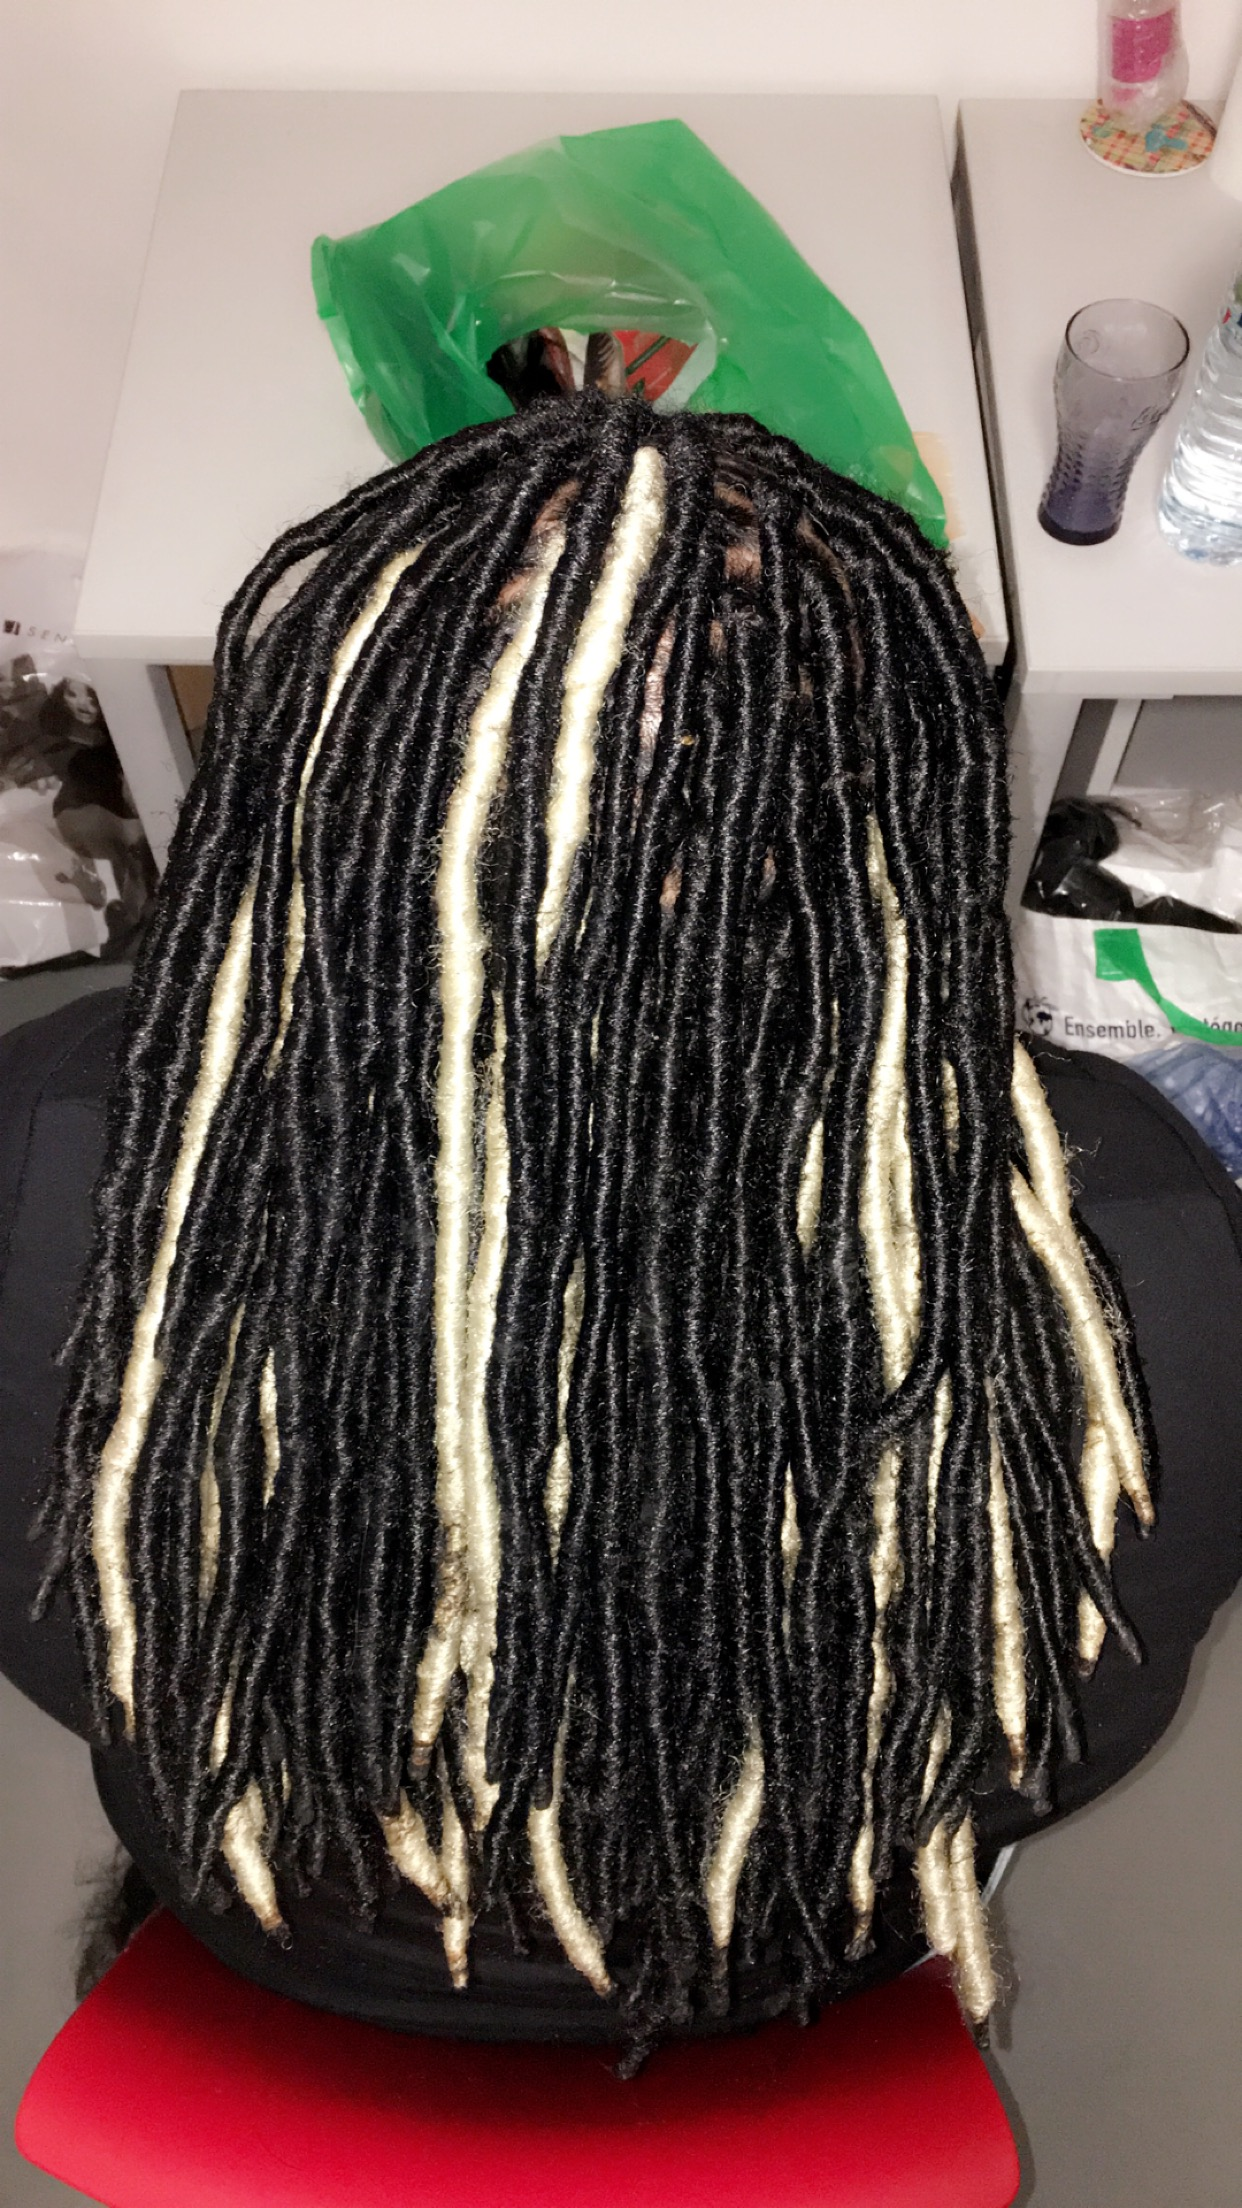 salon de coiffure afro tresse tresses box braids crochet braids vanilles tissages paris 75 77 78 91 92 93 94 95 WEFBGNGB